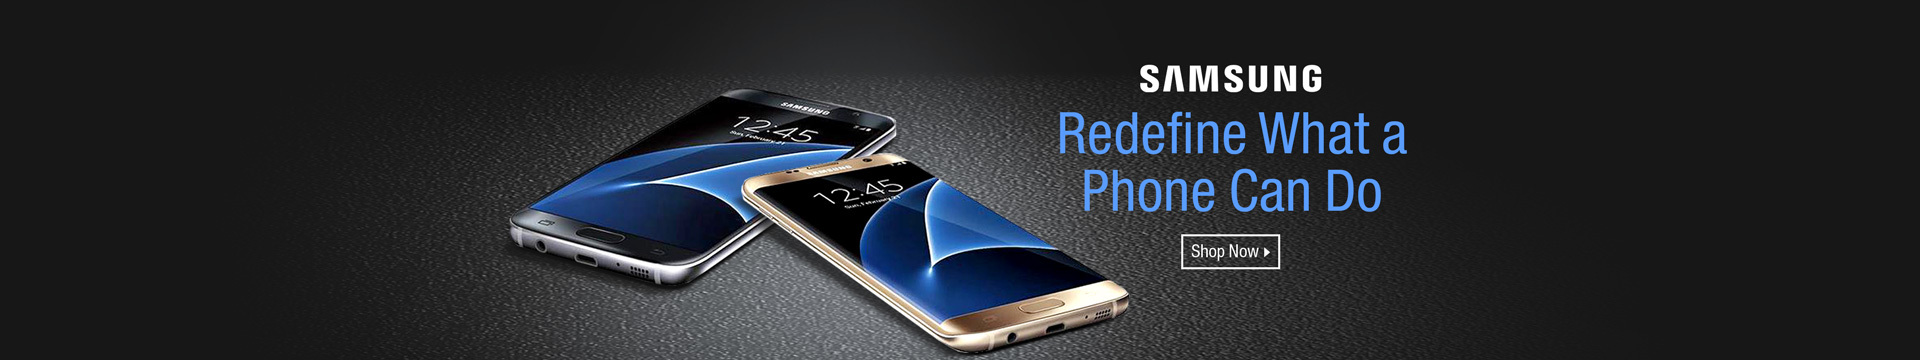 Redefine What a Phone Can Do